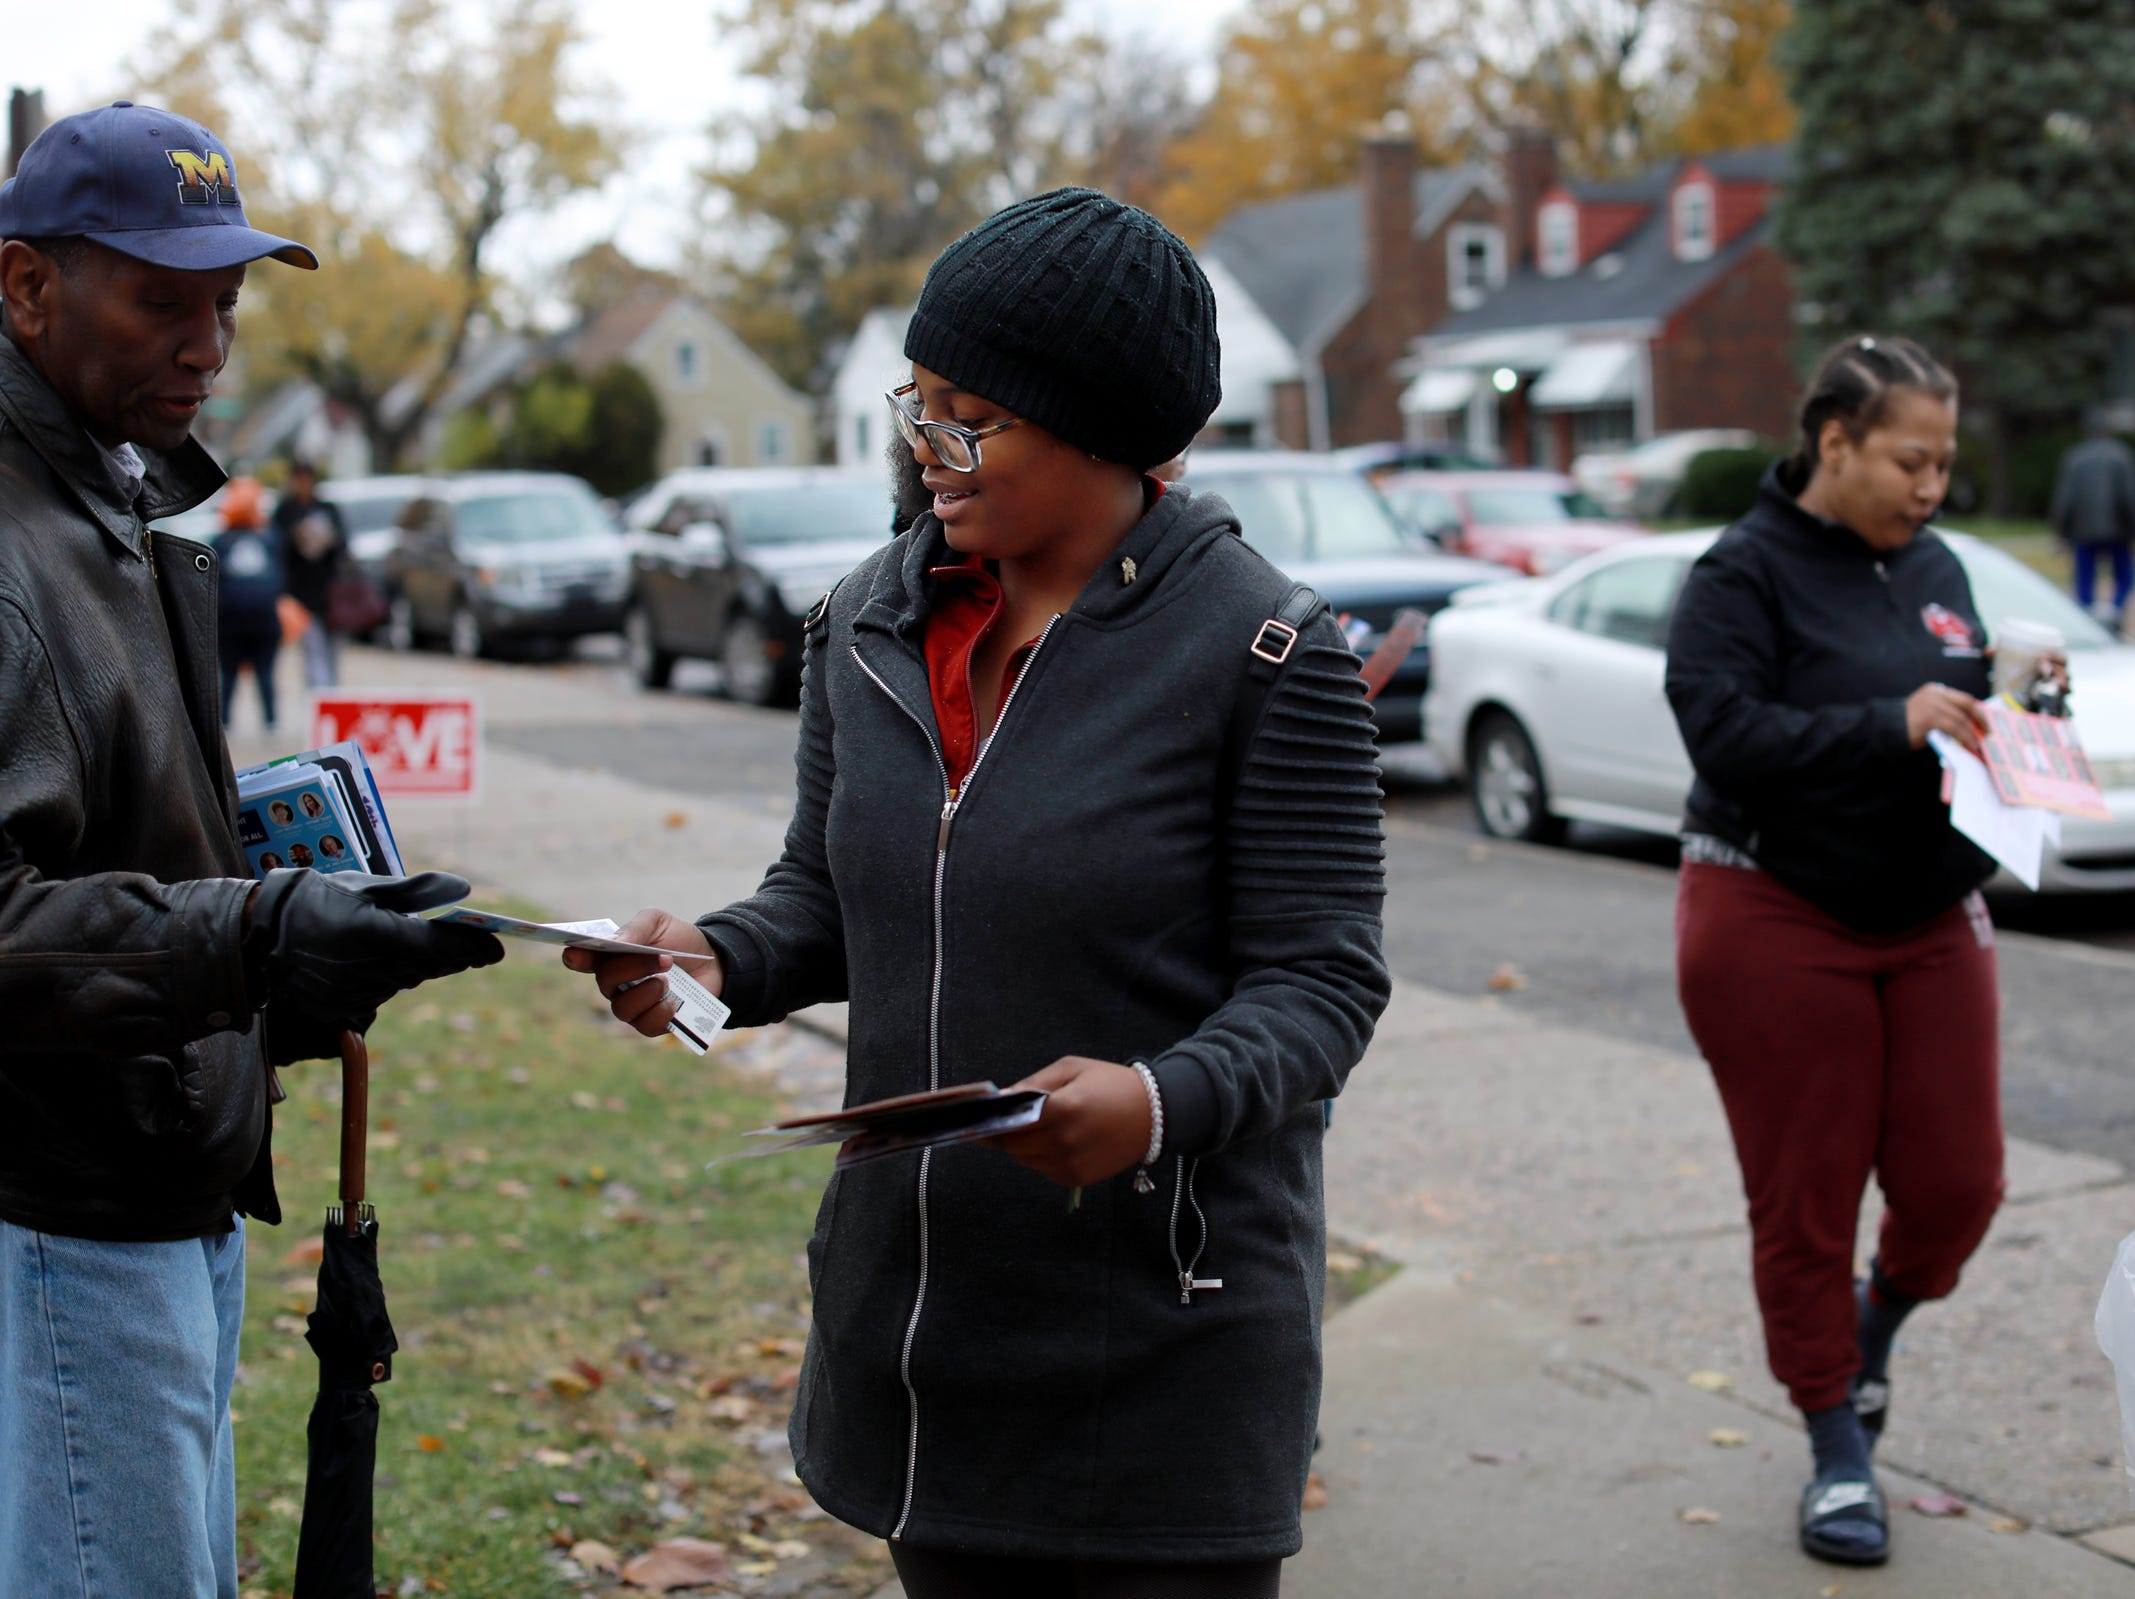 Kieara Morgan, 22, of Detroit receives political flyers as she walks into Bow Elementary to vote in midterm elections in Detroit on Tuesday, Nov. 6, 2018.